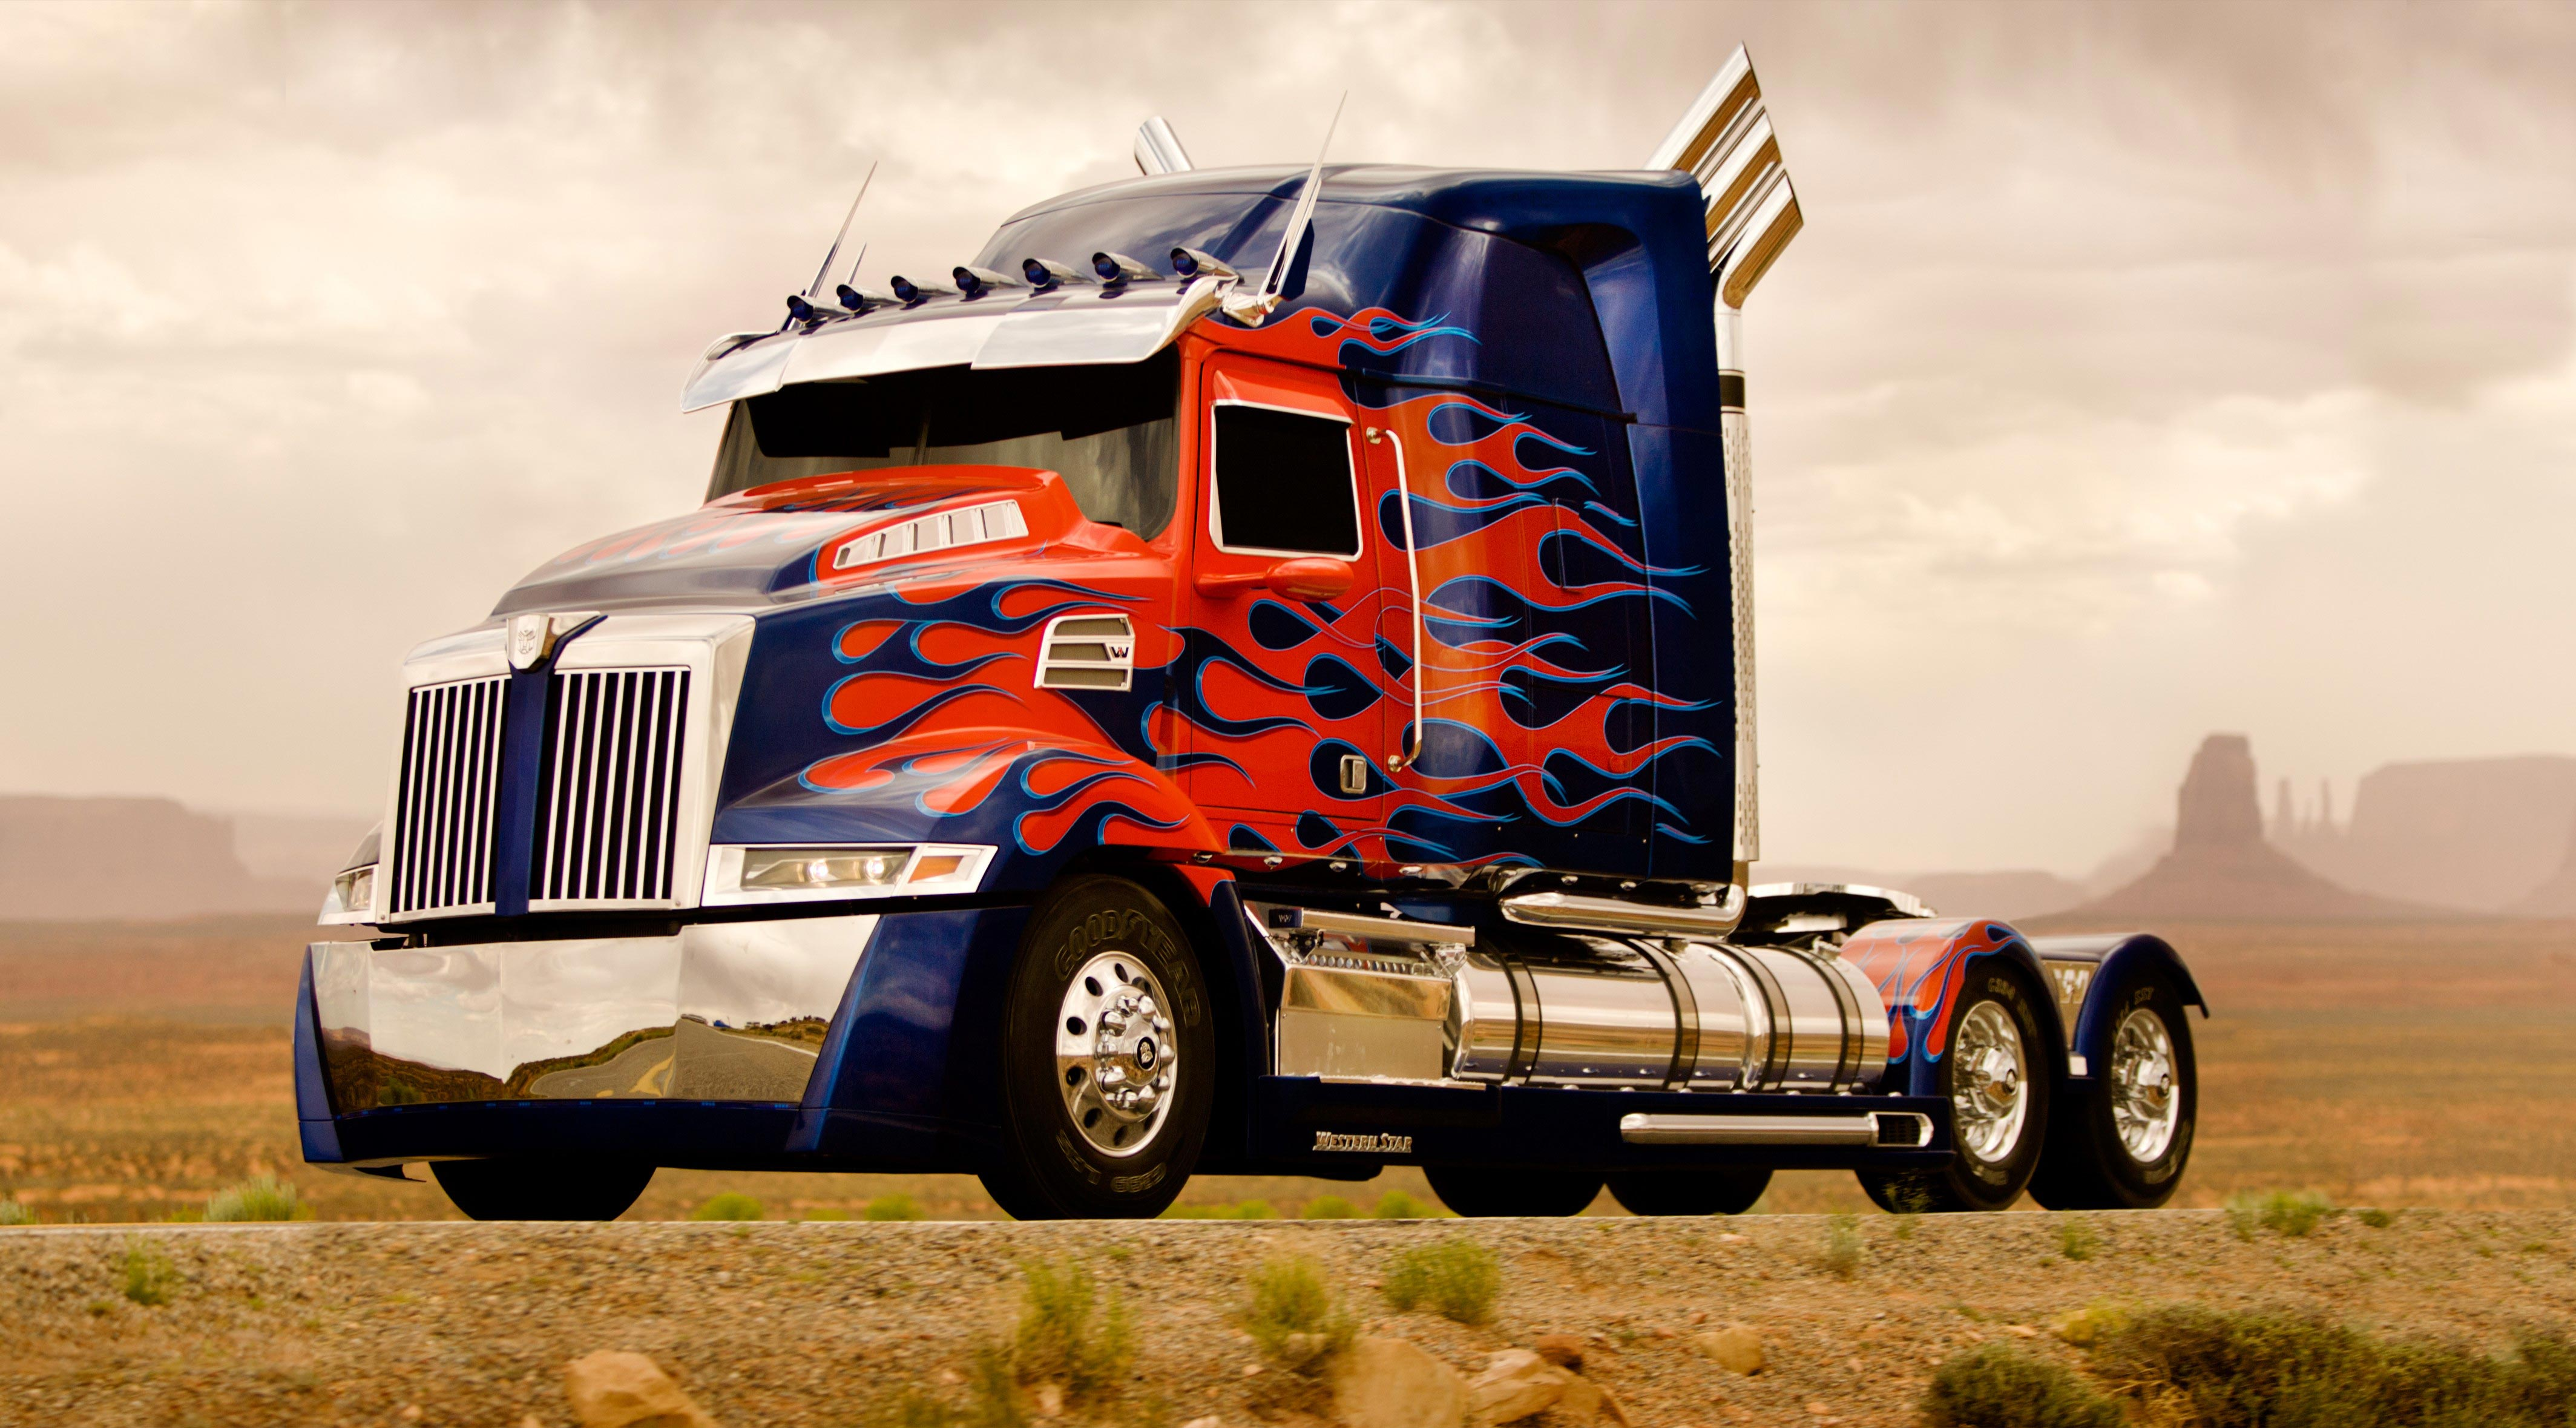 TRANSFORMERS 4 Set Photos: Optimus Prime and Two New Autobots